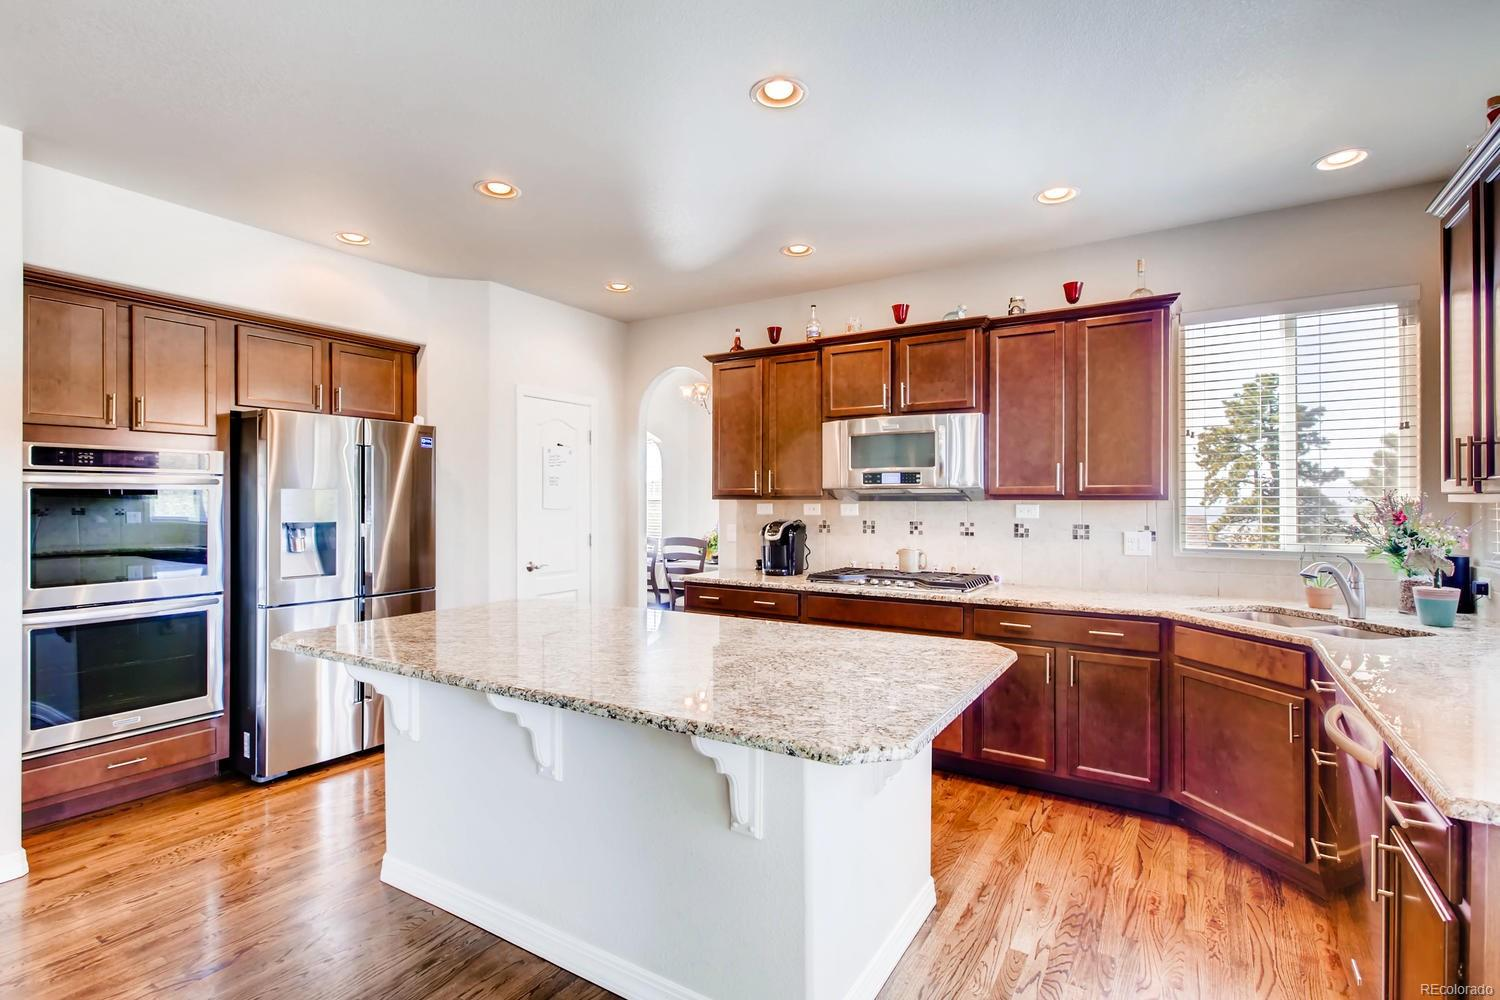 granite countertops and double oven